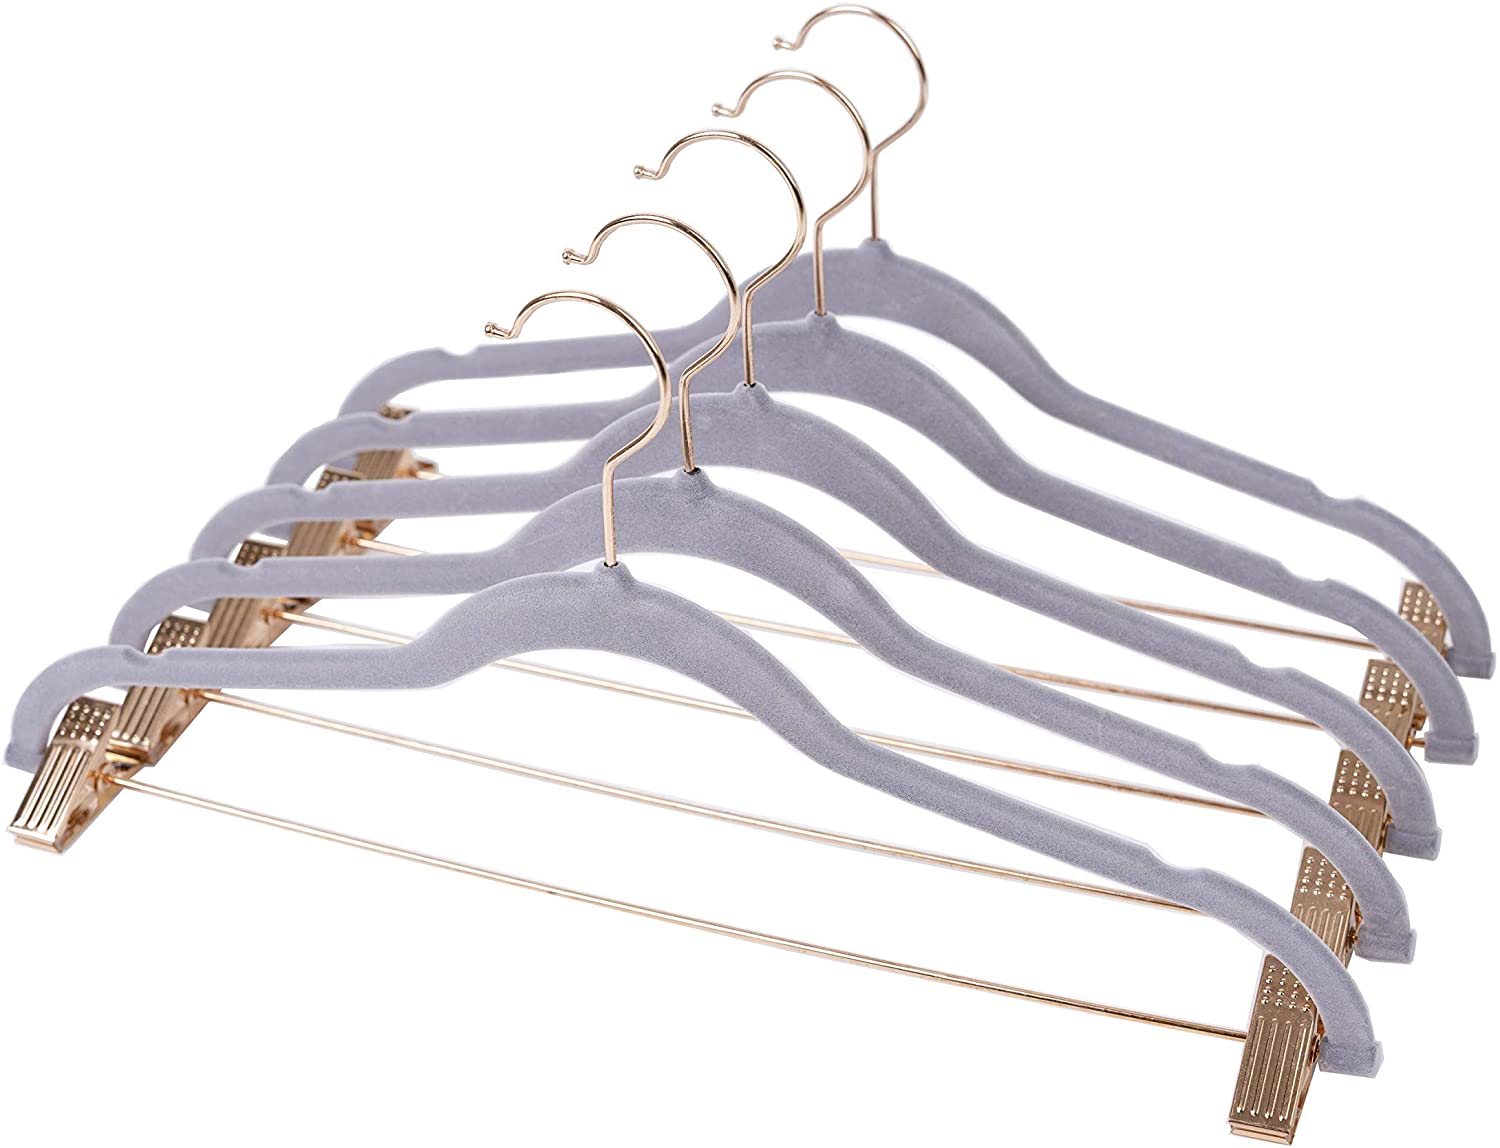 OnCloud-7 Grey Velvet Hangers with Clips 20 Pack, Non Slip Pants and Skirt Hangers with Rose Gold Hooks